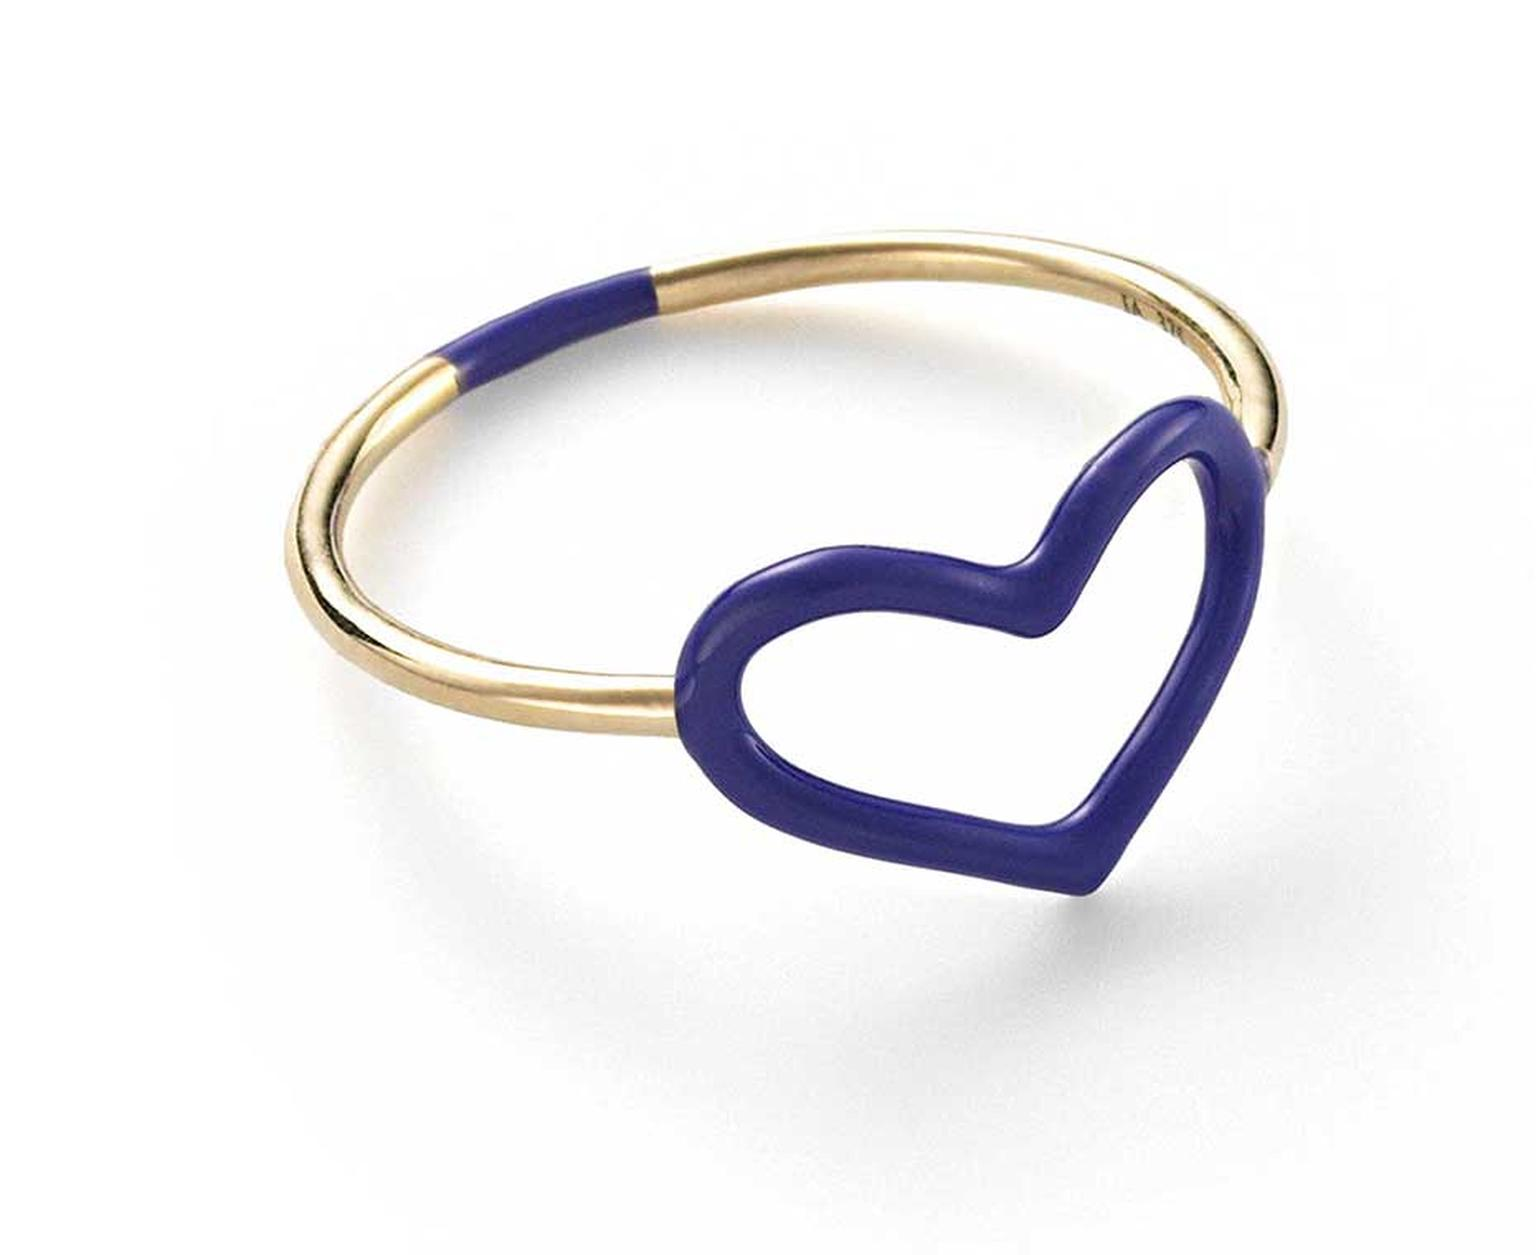 Jordan Askill Heart ring in gold with sapphire blue enamel.